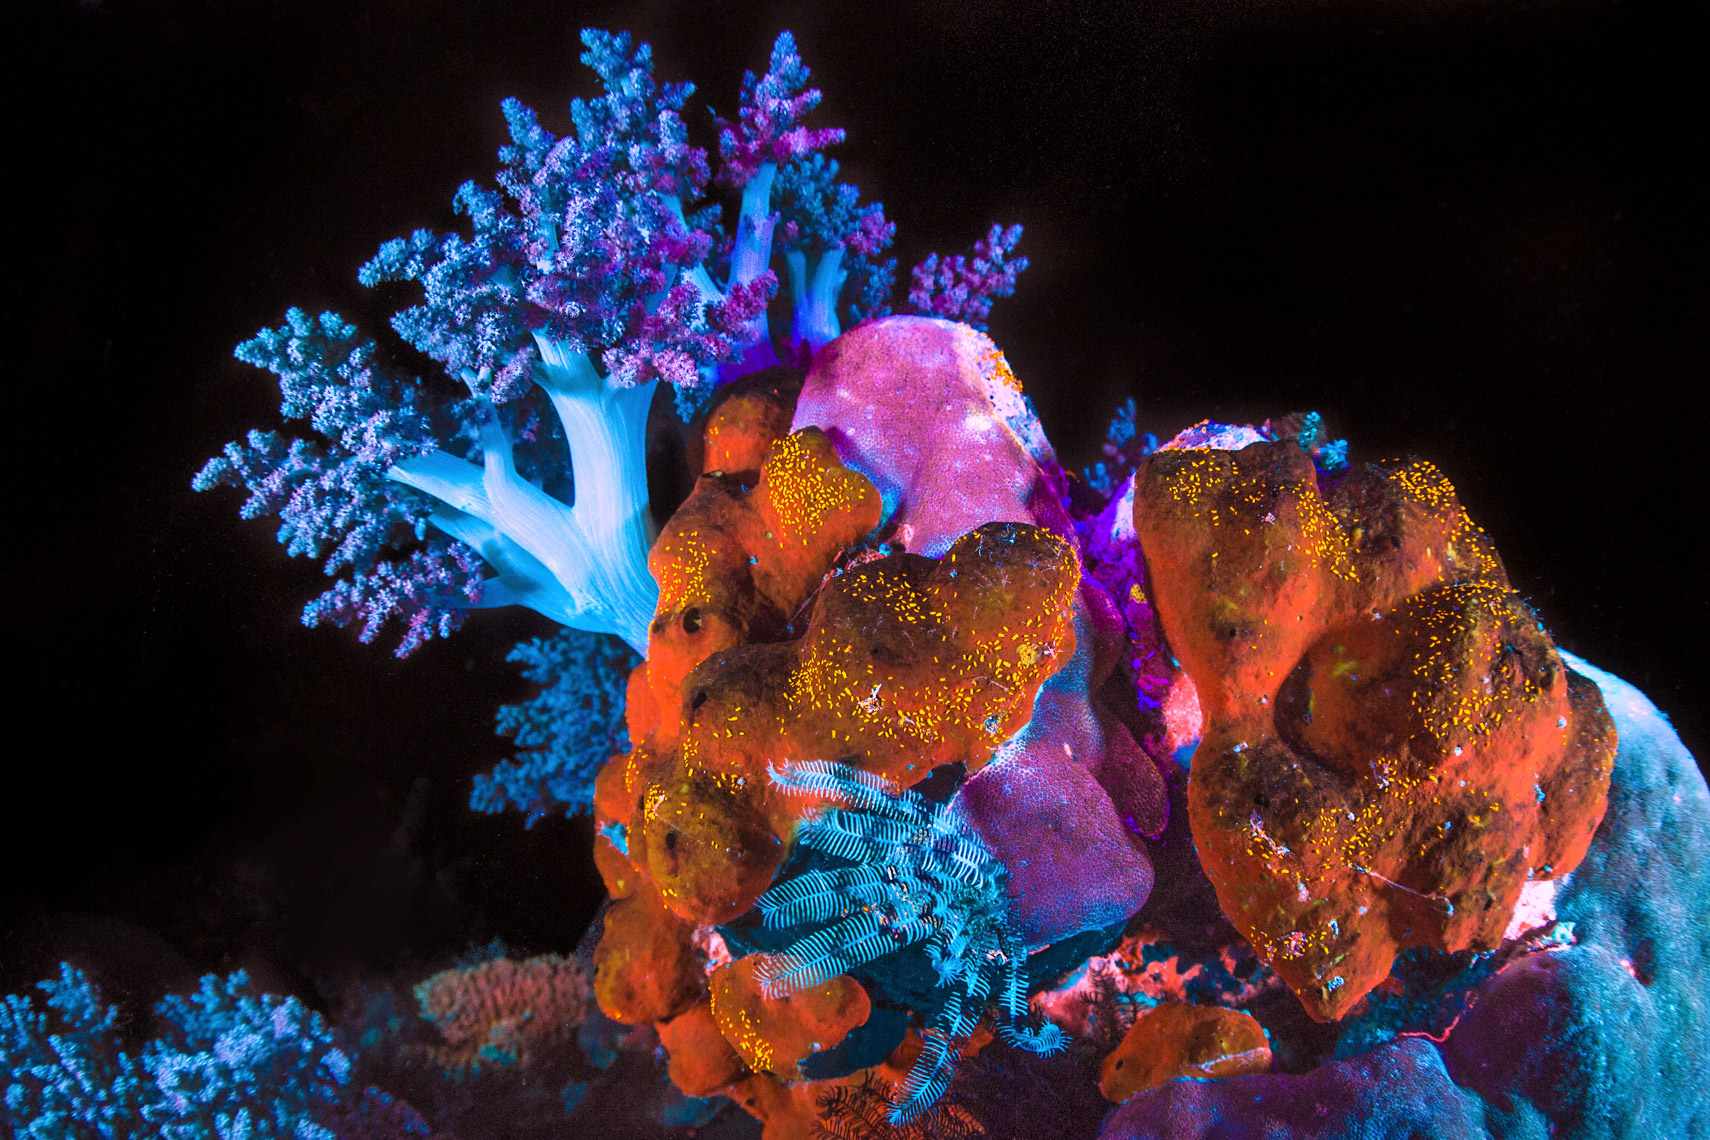 Fluorescent sponge and copepodes